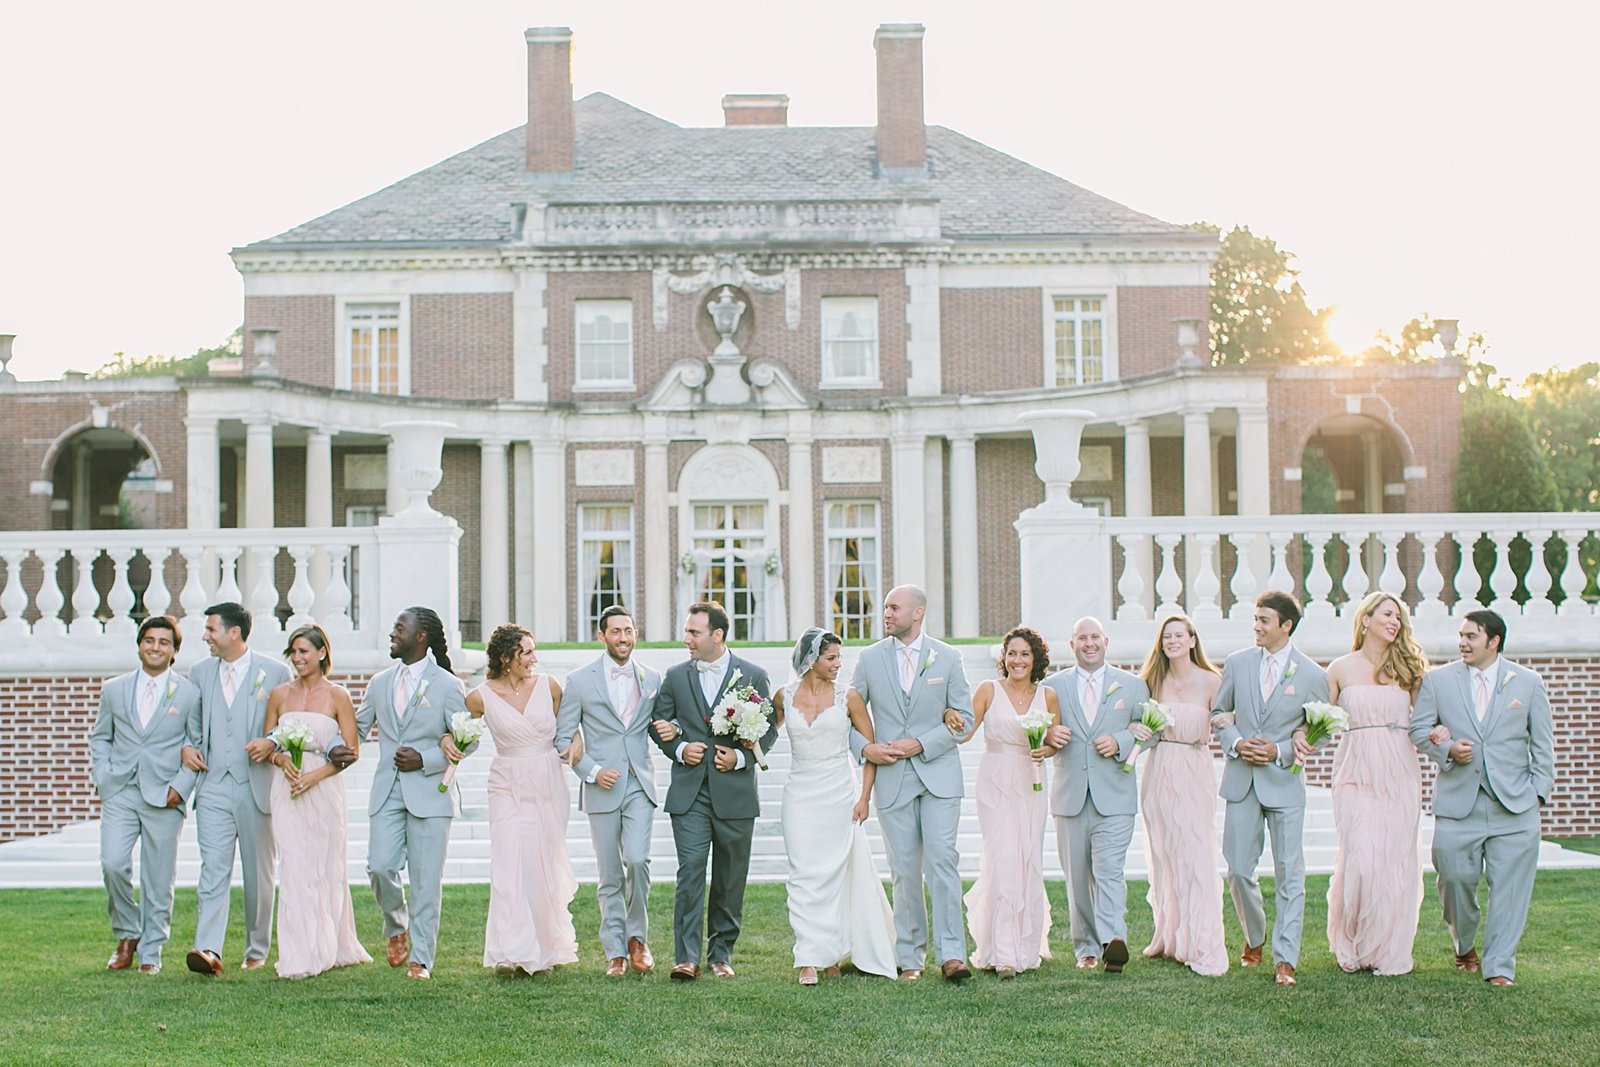 deseversky_mansion_wedding_photos_0040